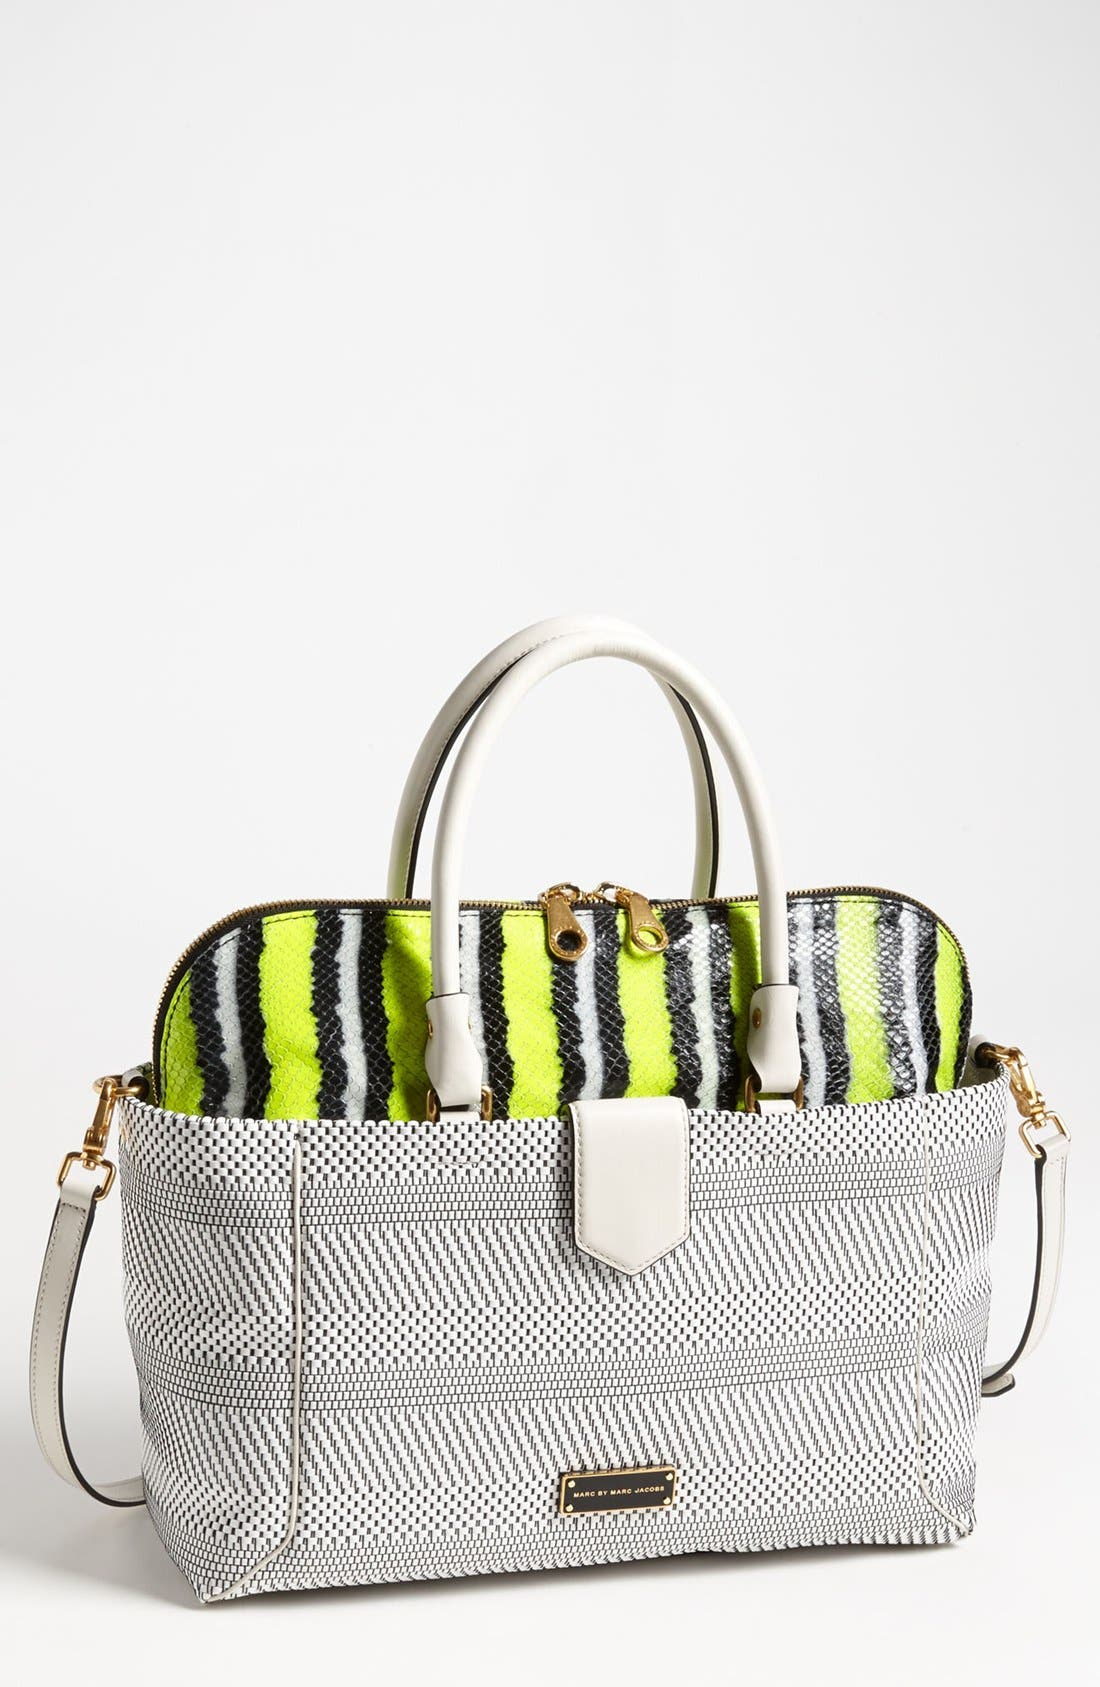 Main Image - MARC BY MARC JACOBS 'Double Trouble Anemone - Whitney' Leather Tote